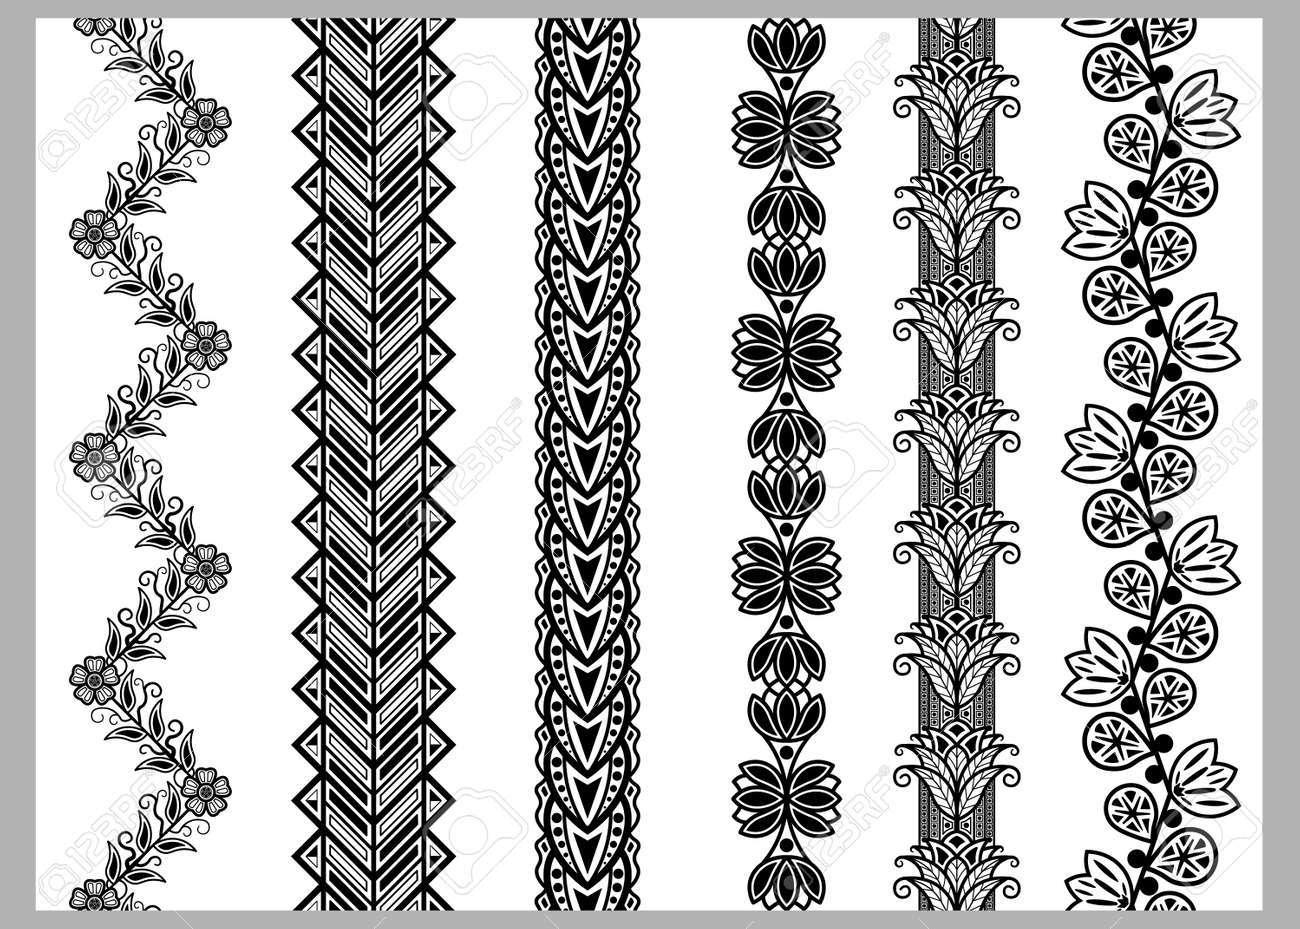 Indian Henna Border Decoration Elements Patterns In Black And